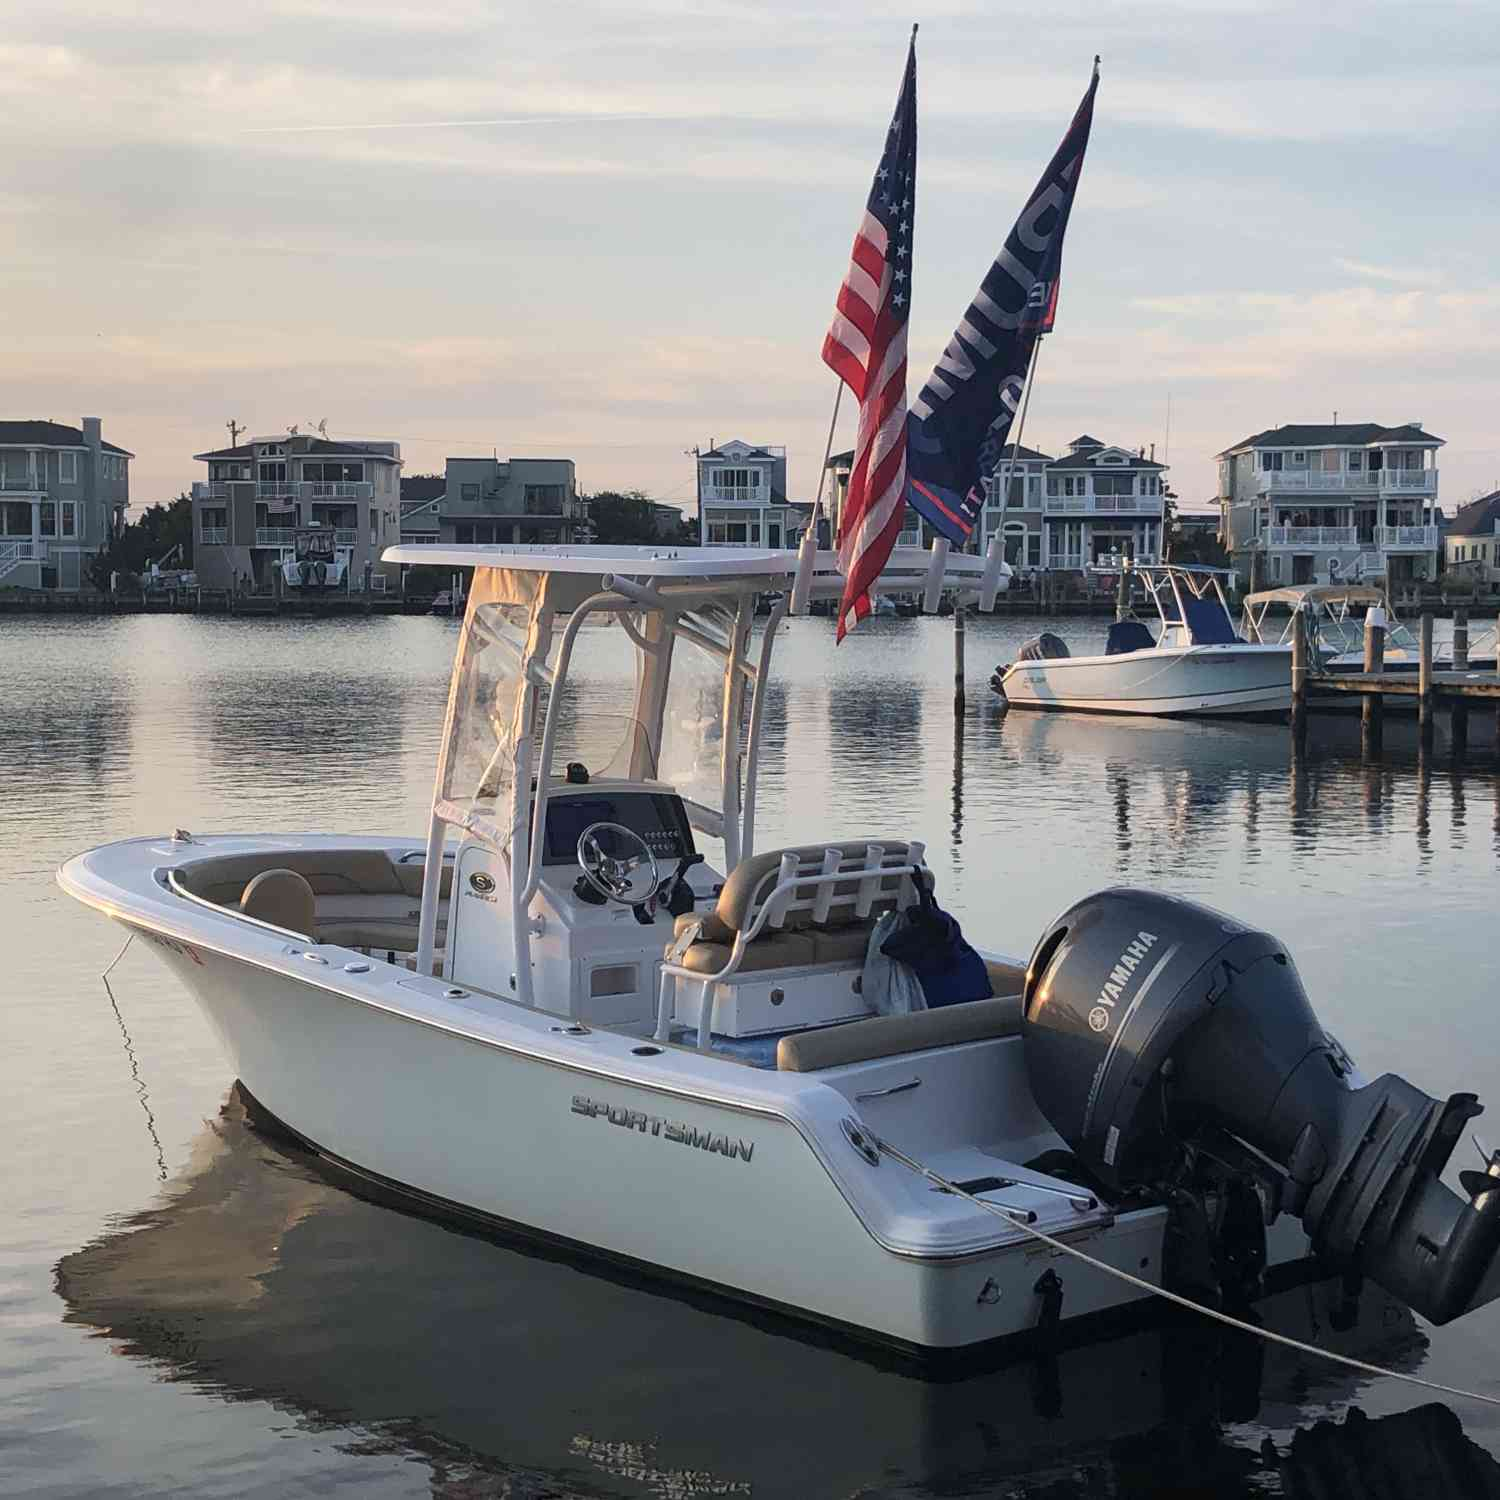 Title: Representing Sportsman, our Country and President! - On board their Sportsman Heritage 211 Center Console - Location: Long Beach Island, NJ. Participating in the Photo Contest #SportsmanDecember2019